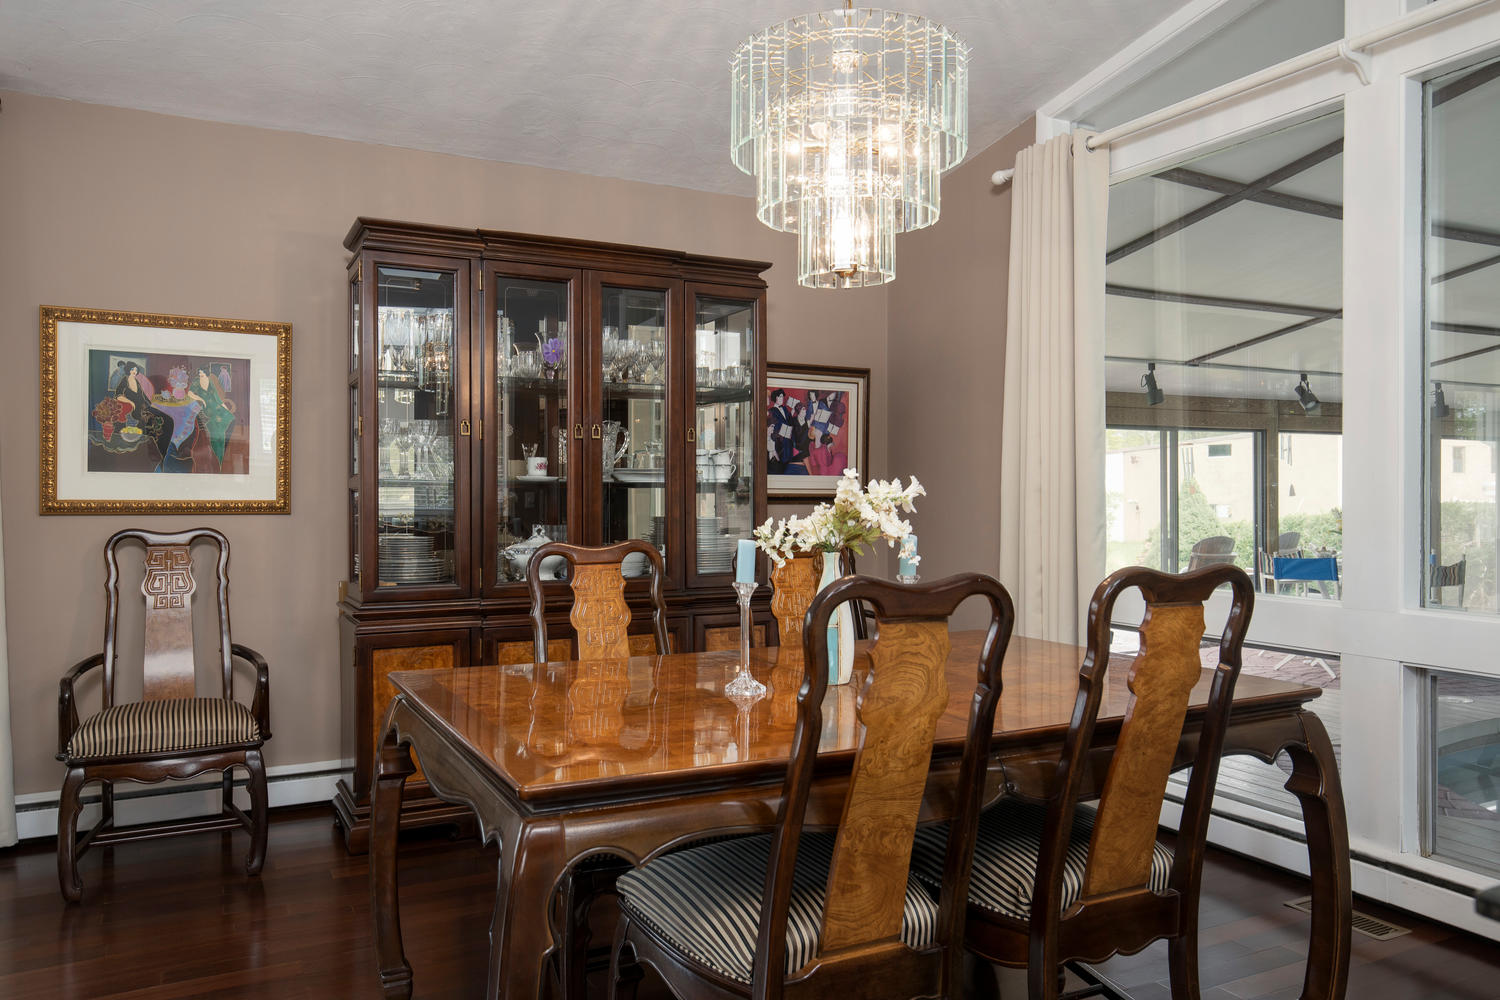 5258 Armor Duells Rd Orchard-large-008-014-Dining Room-1500×1000-72dpi